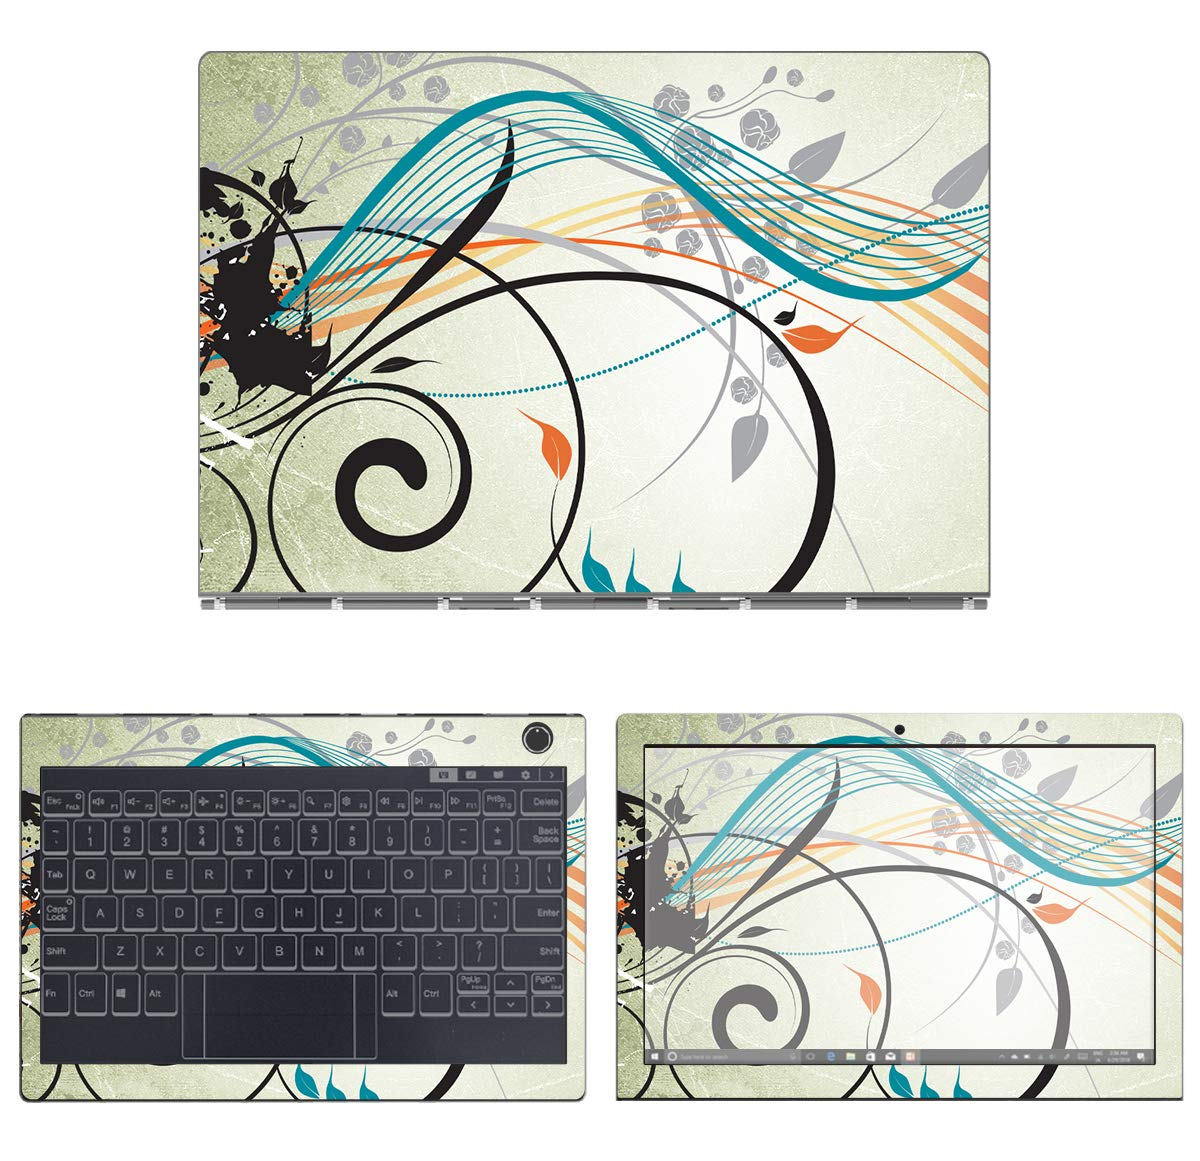 Amazon.com: decalrus - Protective Decal Skin Sticker for ...